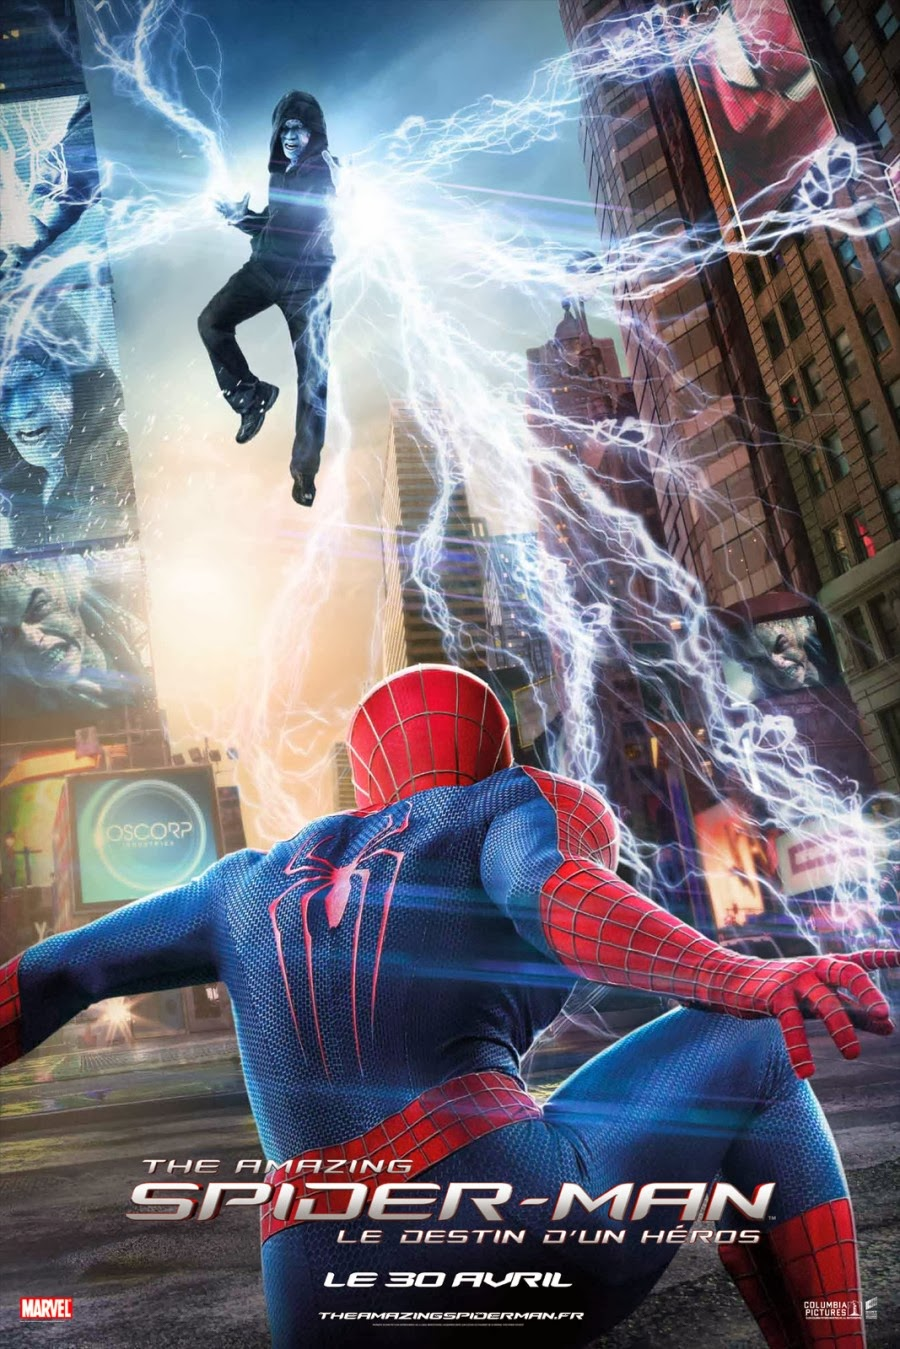 Regarder The Amazing Spider-Man : le destin d'un Héros en streaming - Films Streaming